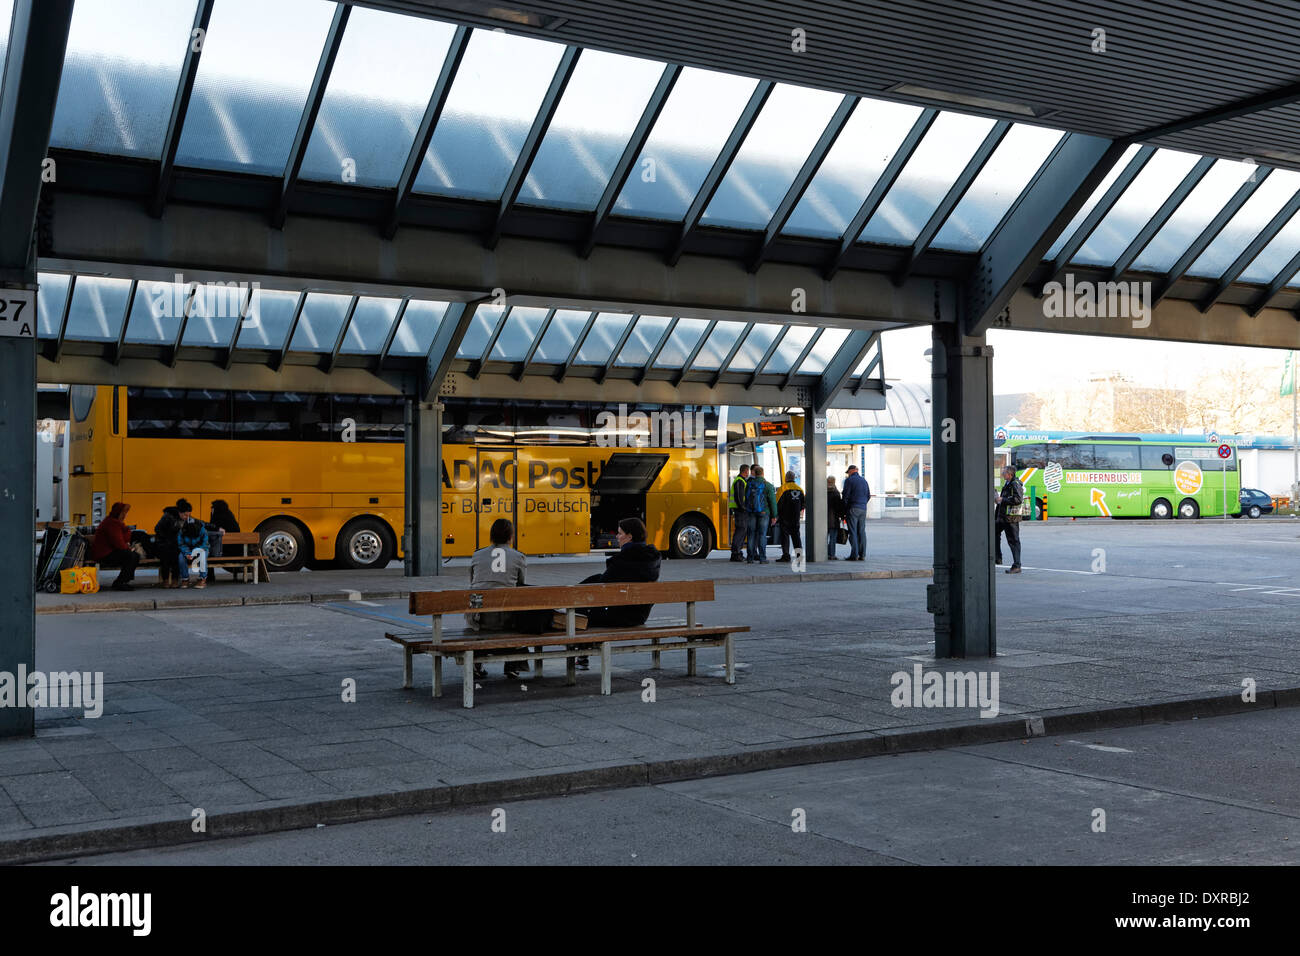 berlin germany central bus station berlin stock photo royalty free image 68126186 alamy. Black Bedroom Furniture Sets. Home Design Ideas